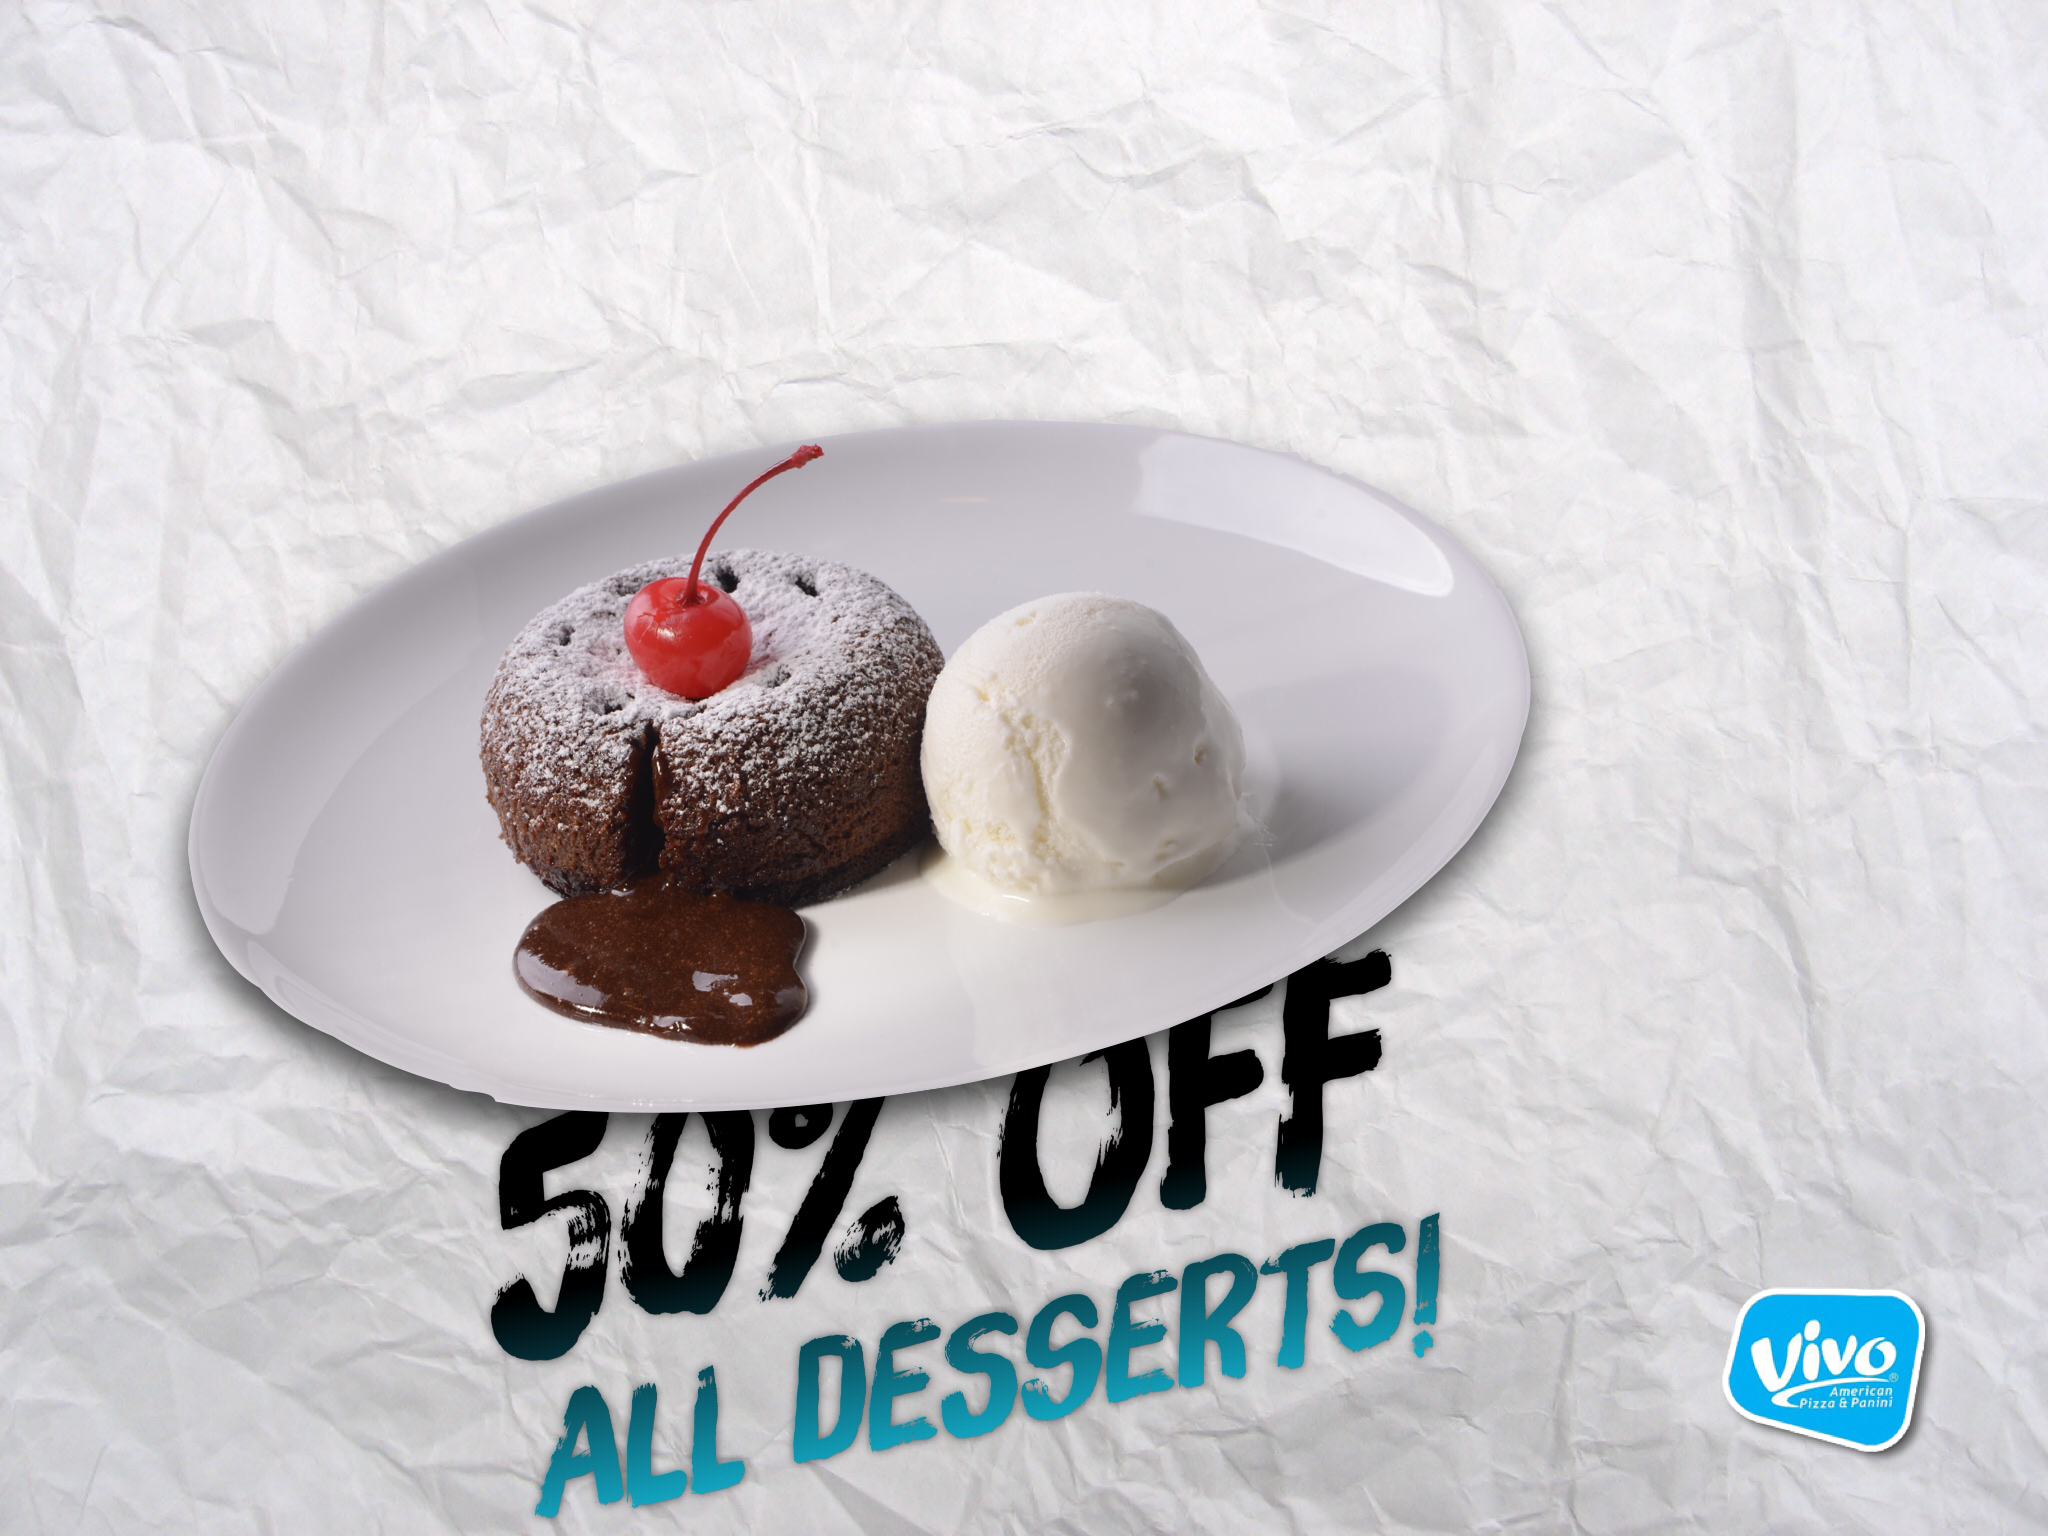 50% off all desserts